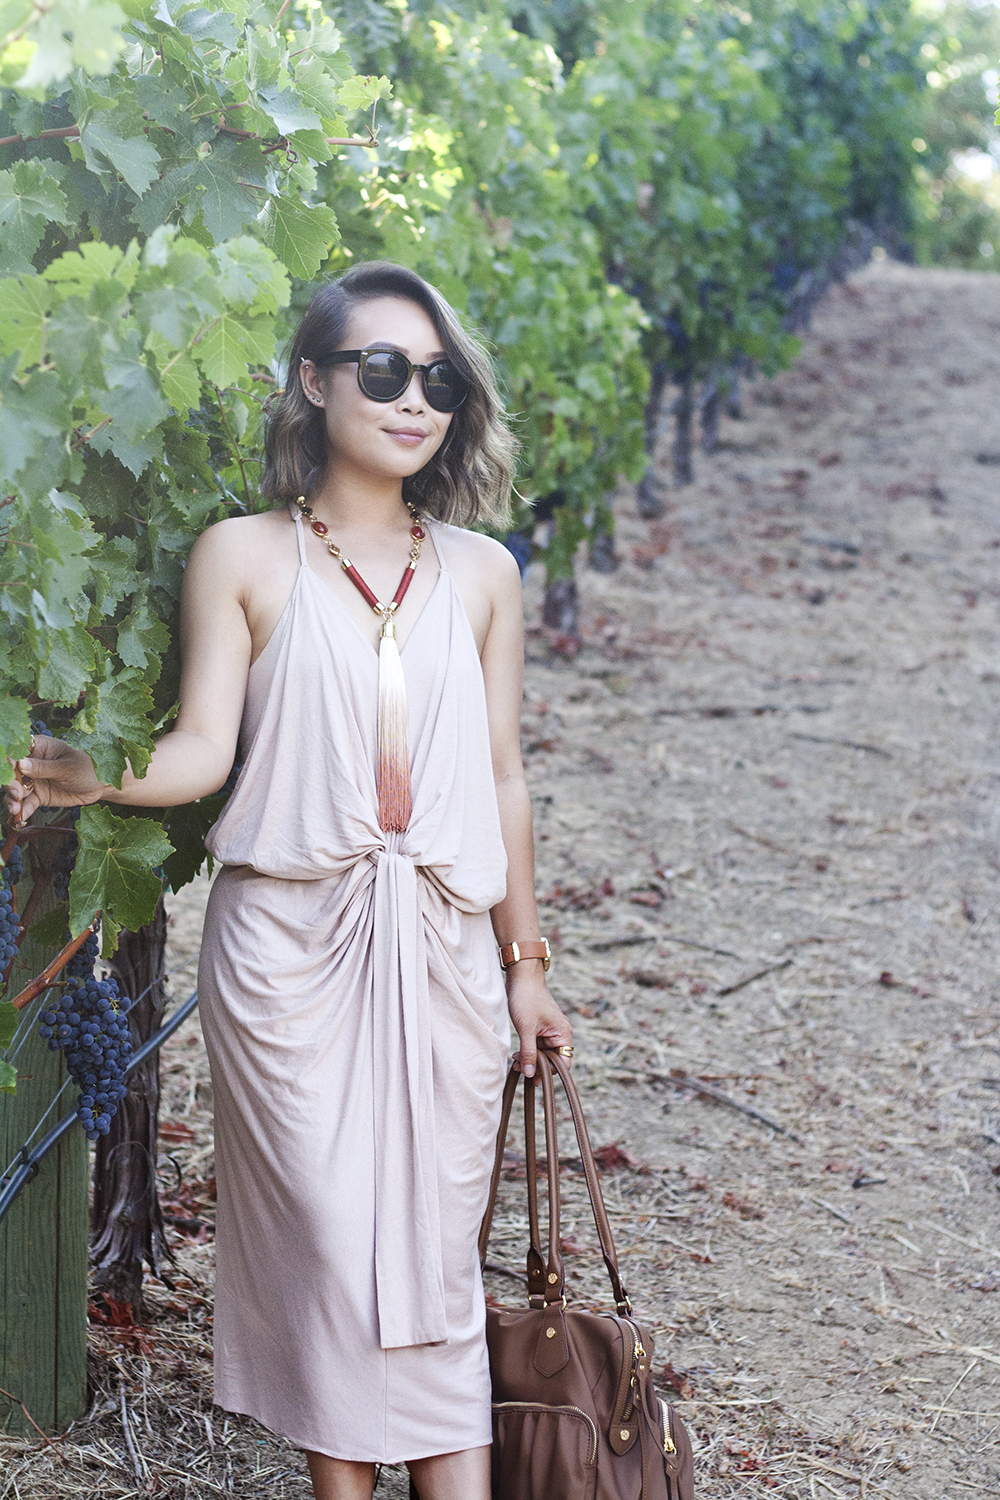 10napa-winecountry-vineyard-padis-ajaffe-travel-fashion-style